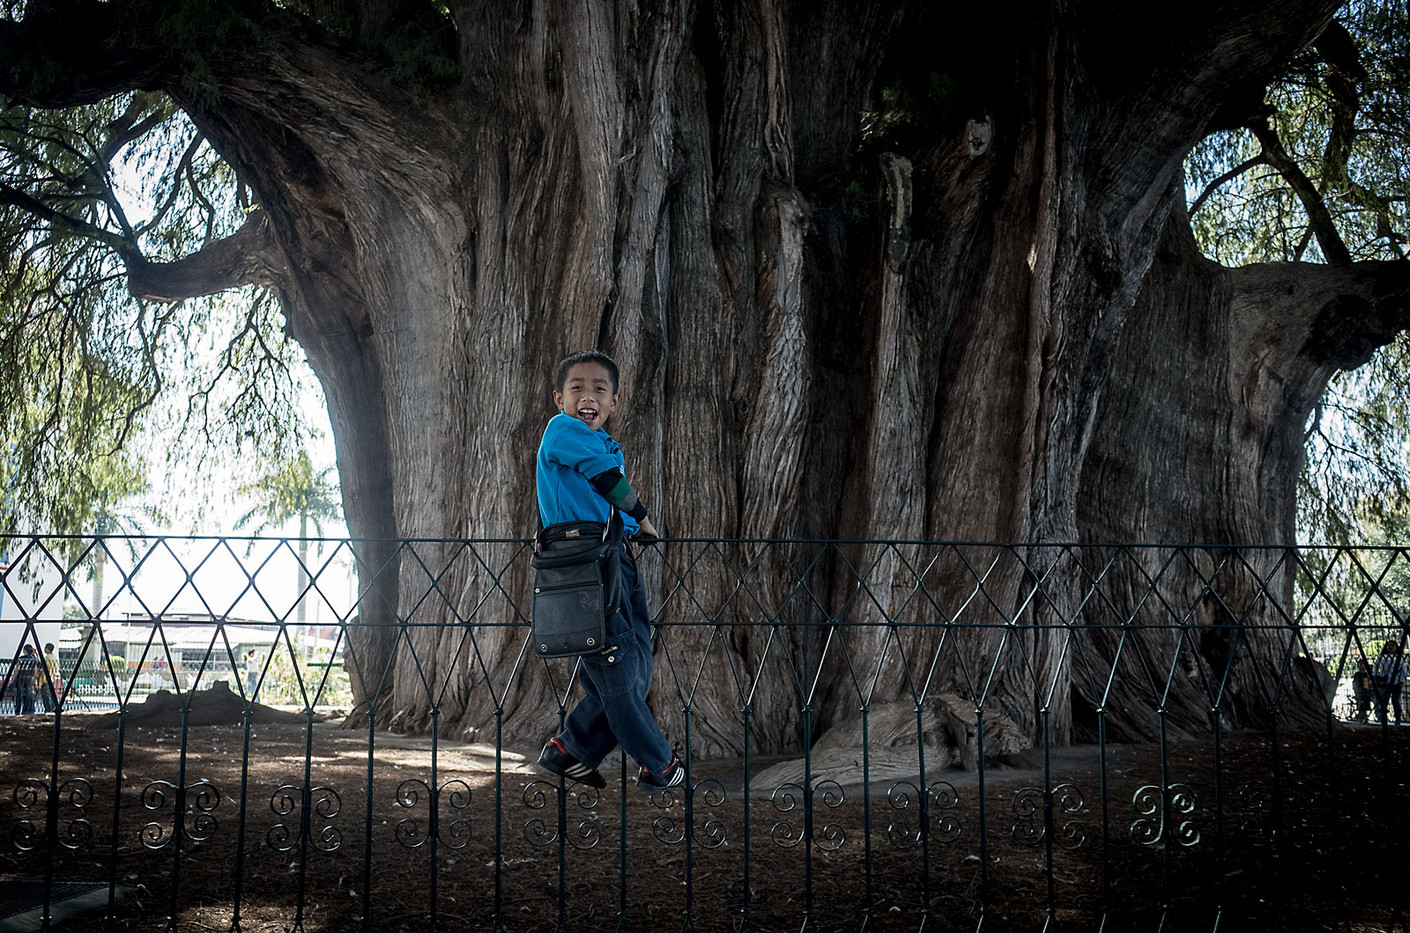 """Julio is a child guide at the Árbol del Tule in Oaxaca. The Montezuma cypress tree is the widest in the world with a trunk diameter of 14m and circumference of 45m. Guides like Julio use handheld mirrors to reflect sunlight at specific features of the tree that resemble familiar objects like """"la cuna"""" (the cribe), """"la cara de la bruja"""" (the witch's face), and """"las patas de jirafa"""" (the giraffe's legs)."""